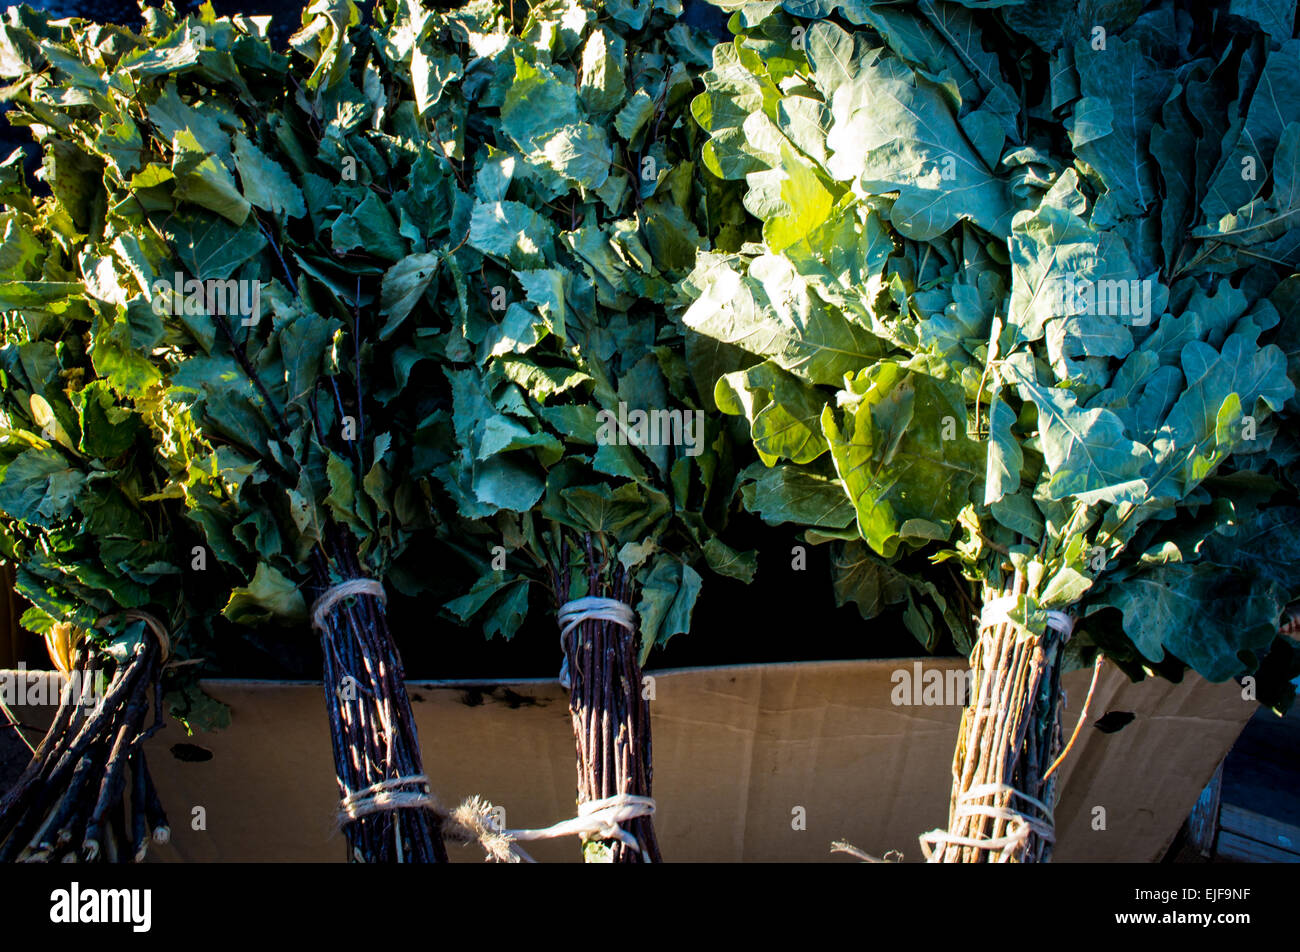 Oak and Birch leaves to be used in Russian saunas to clense the skin organically - Stock Image